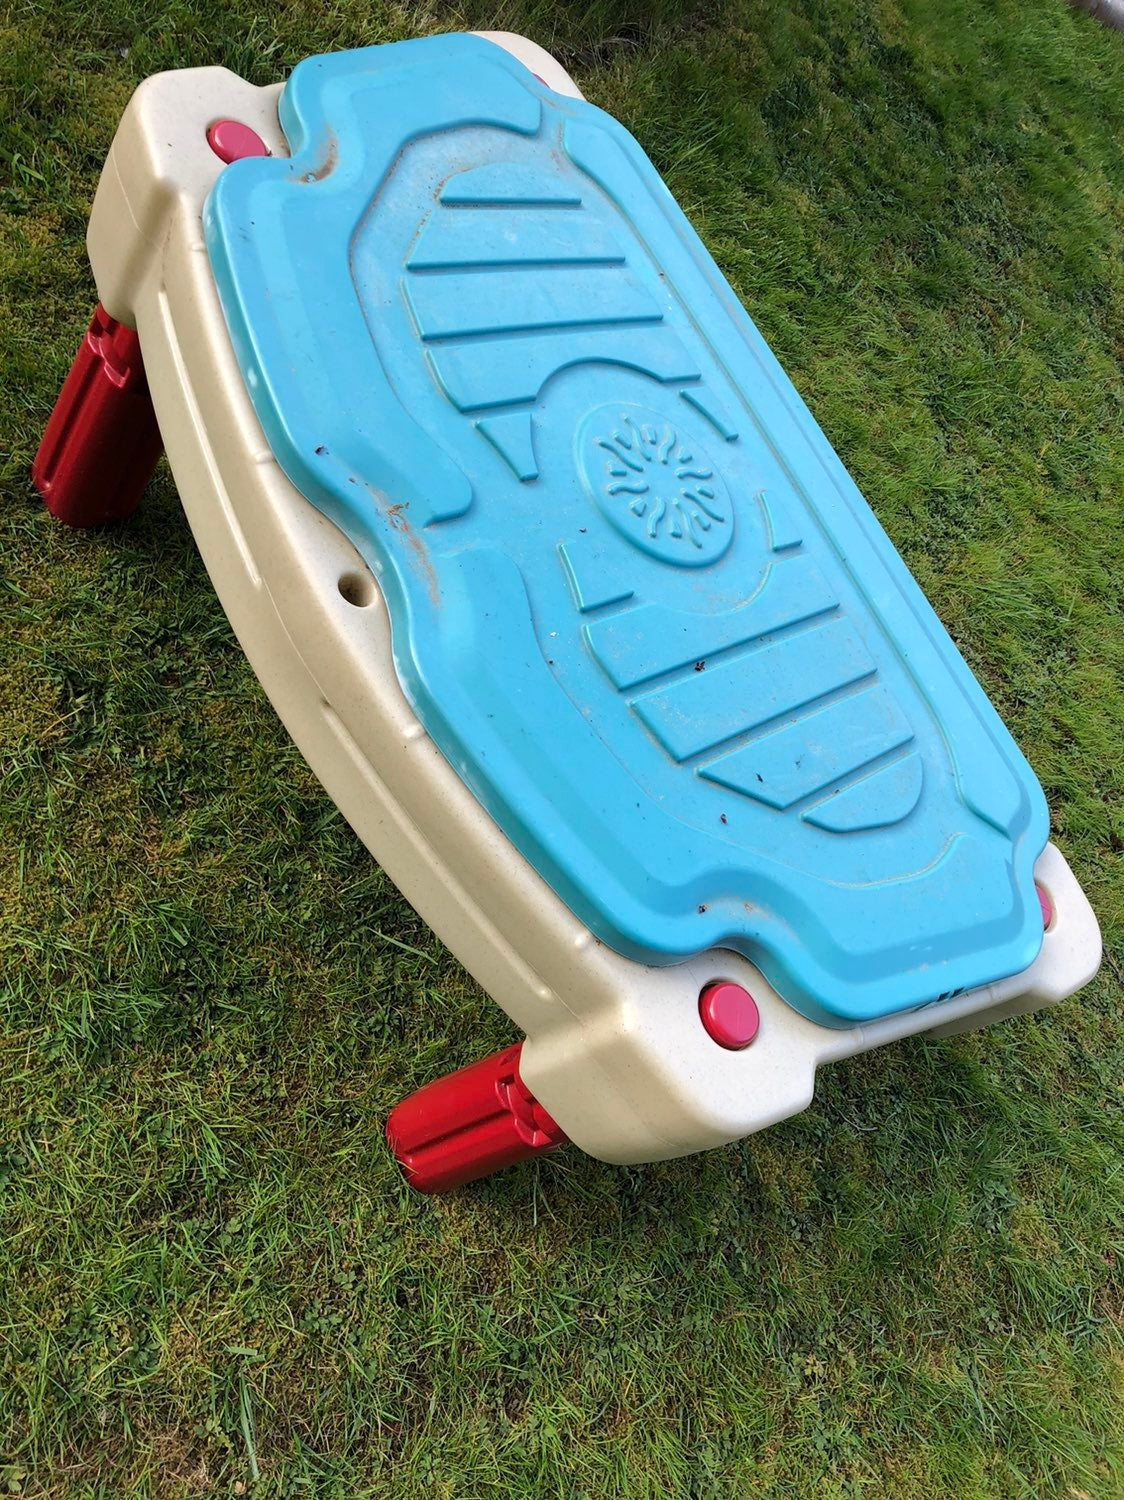 Water table toddler/kid's